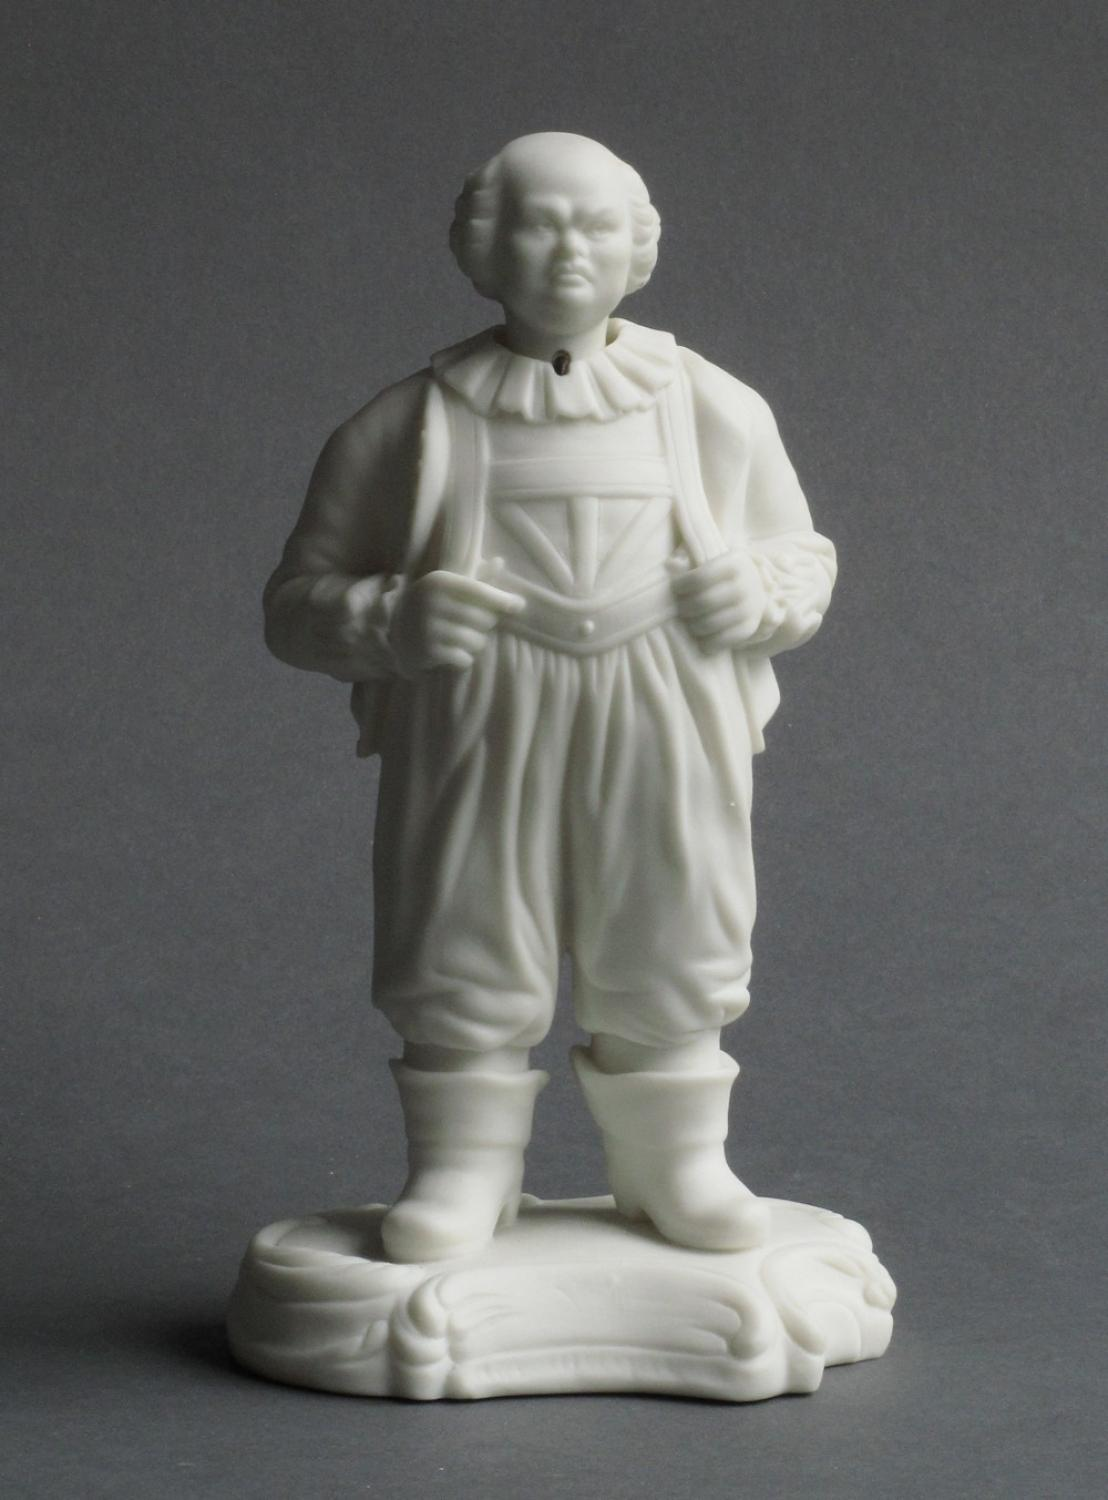 Minton nodding head parian figure of Frolich